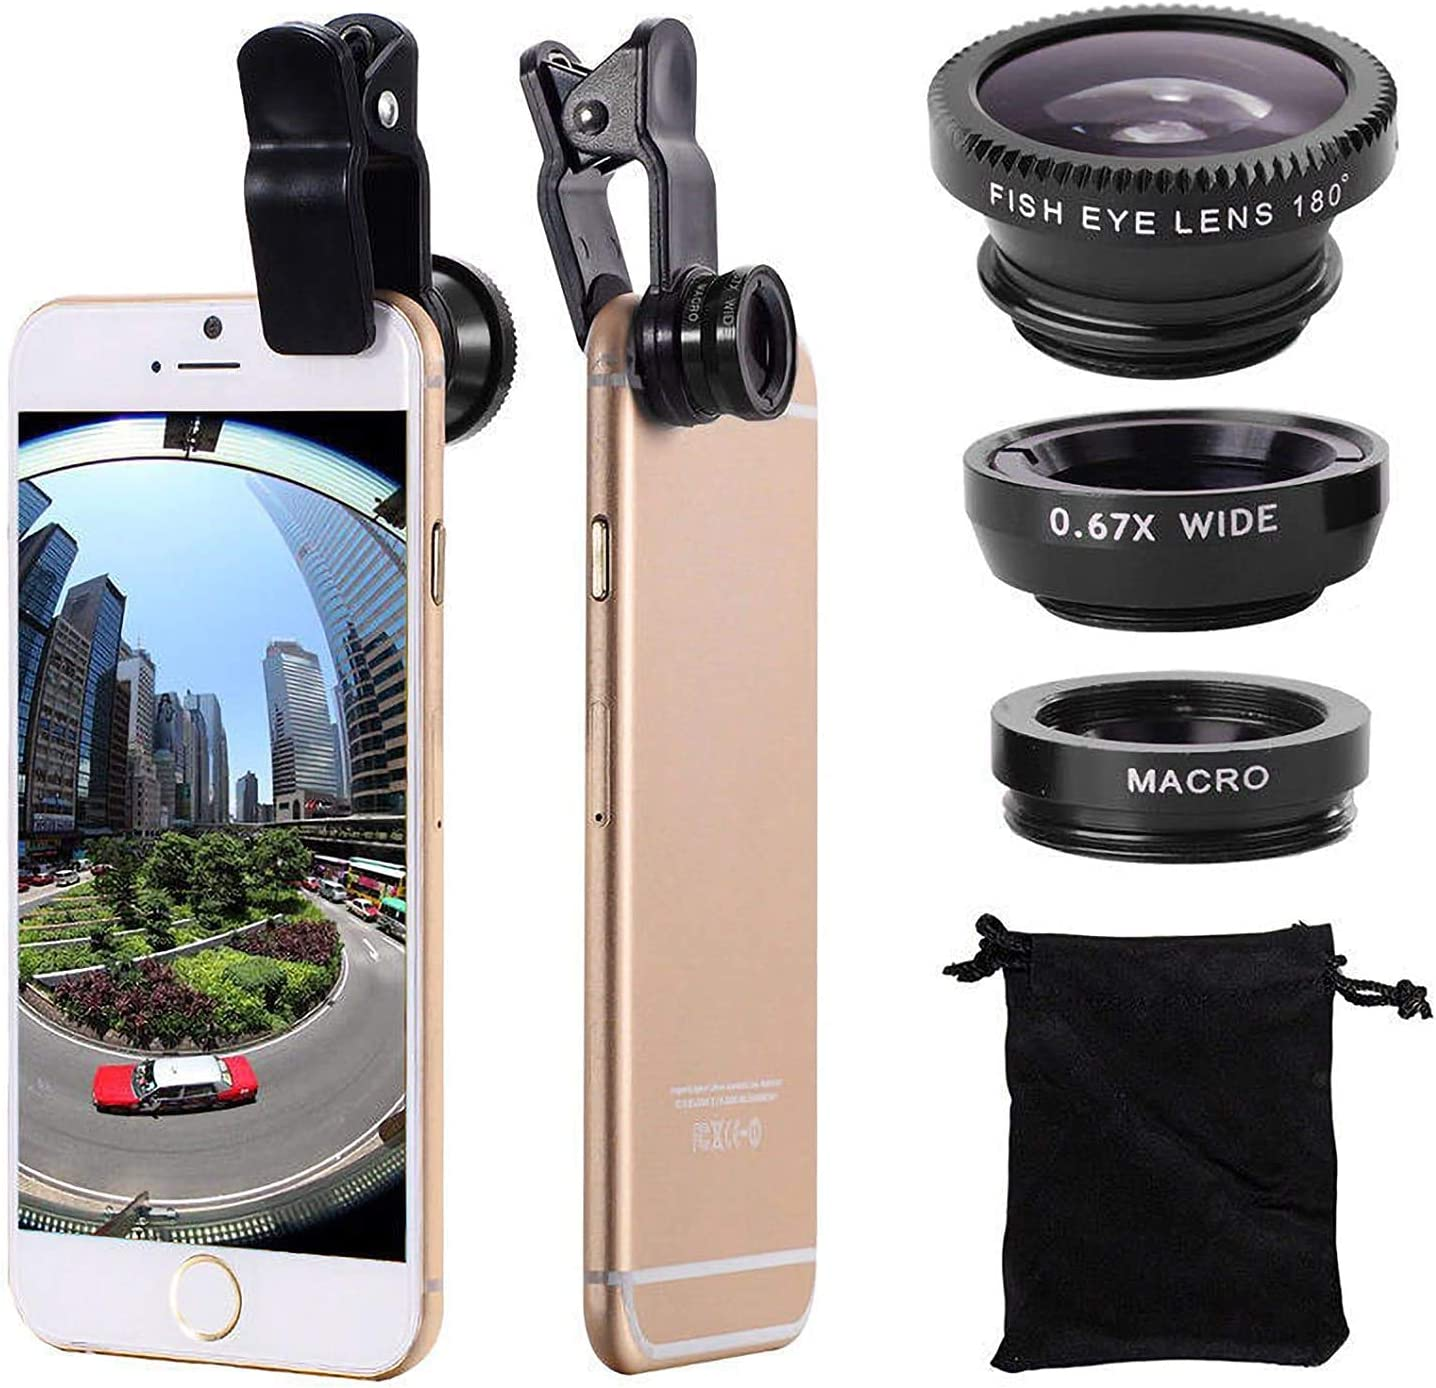 3 in 1 Cell Phone Camera Wide Kit Lens Macro Angle Max 85% OFF 5 popular Fisheye